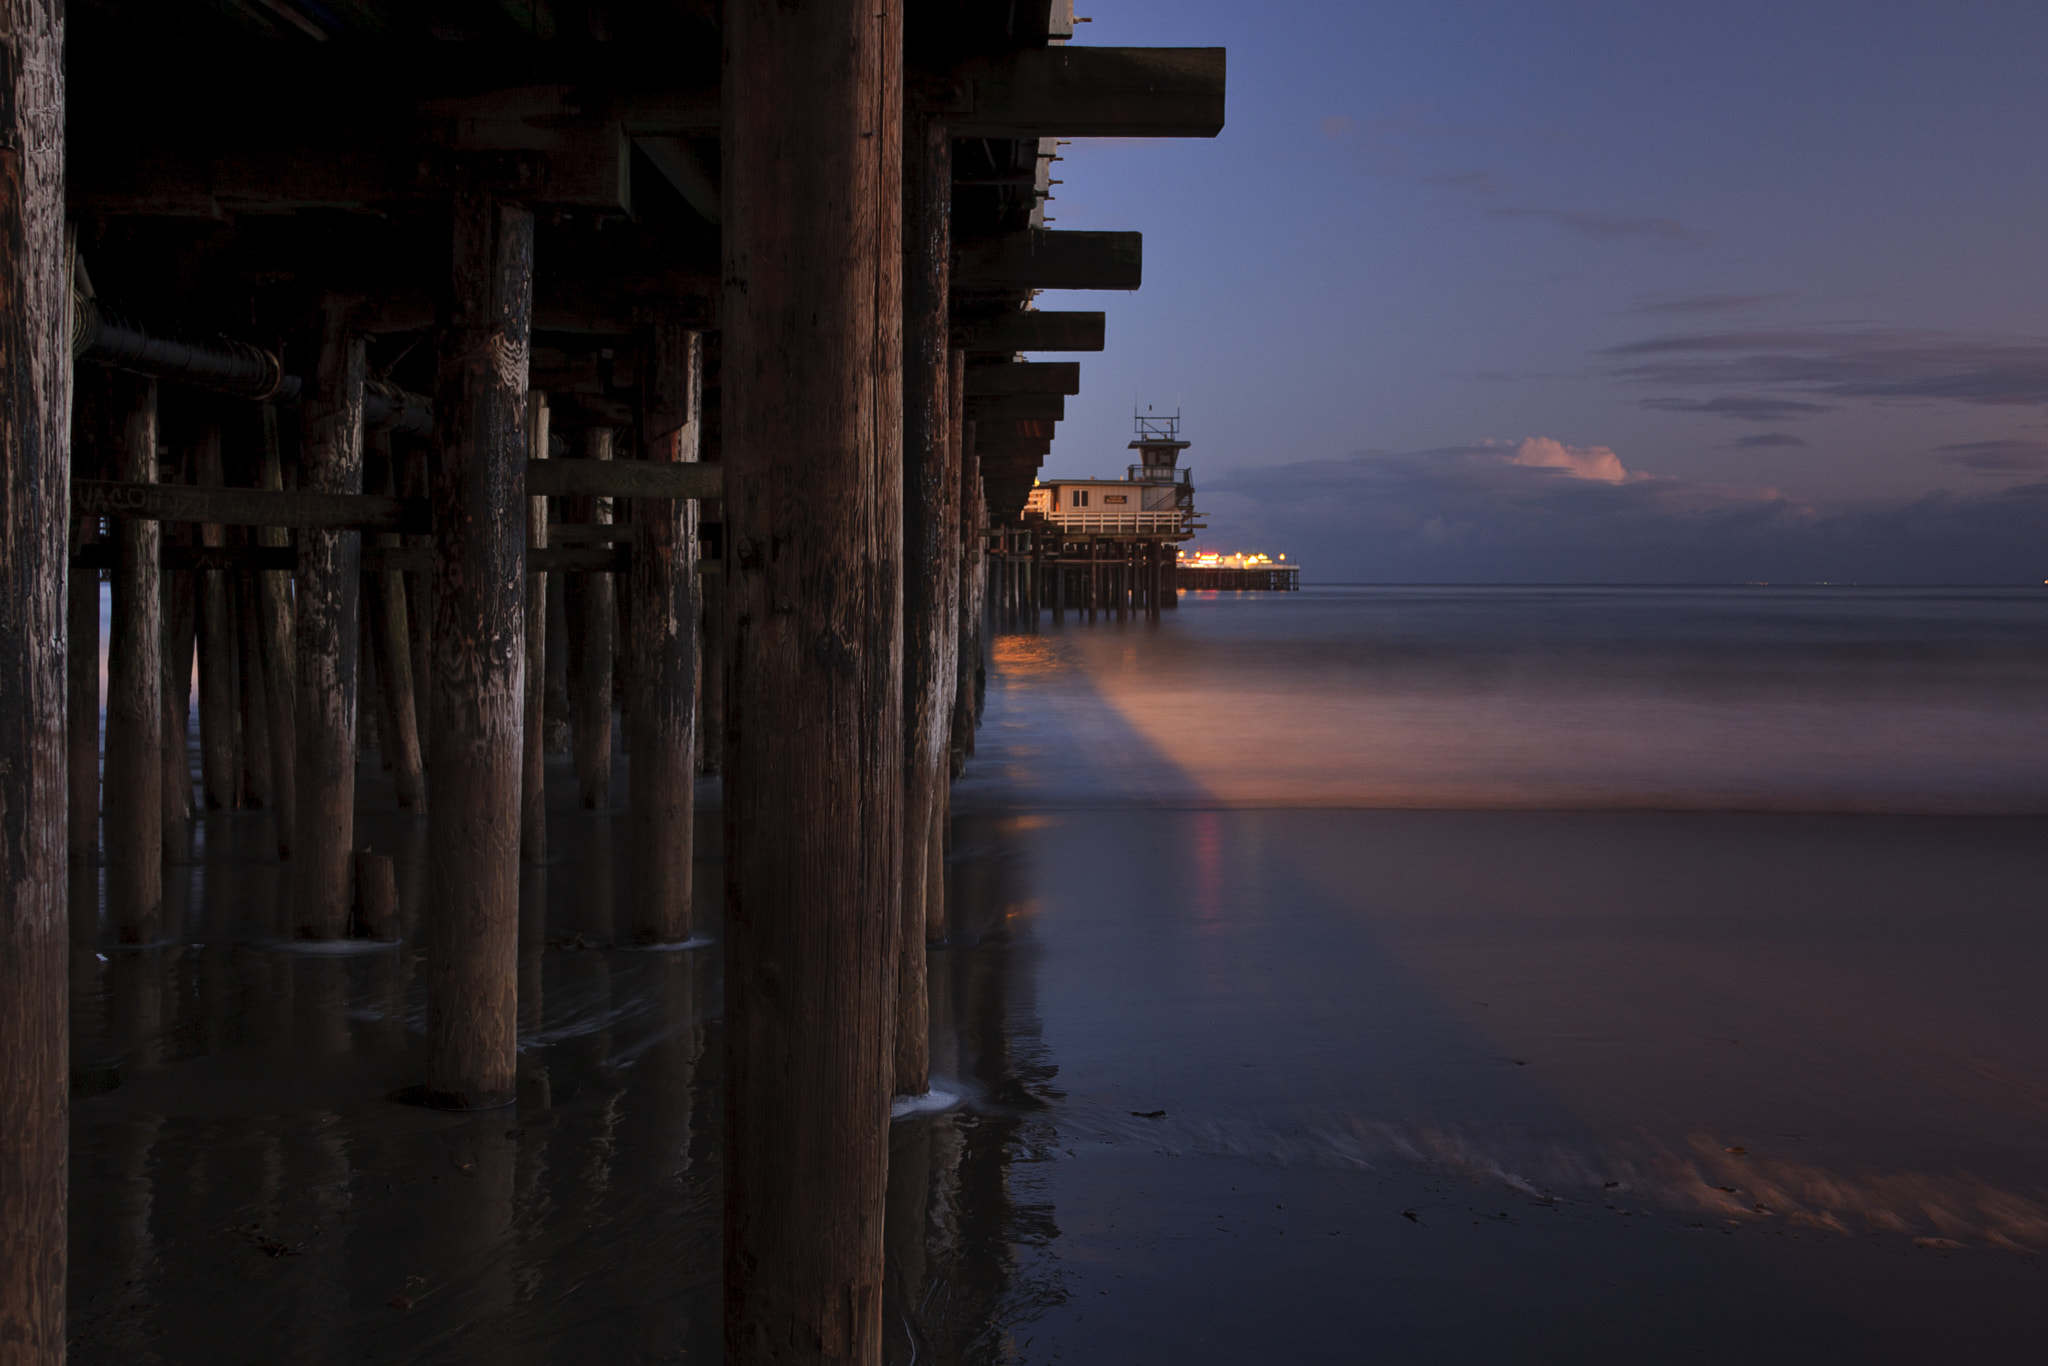 Photograph Evening Light by Candice Montgomery on 500px